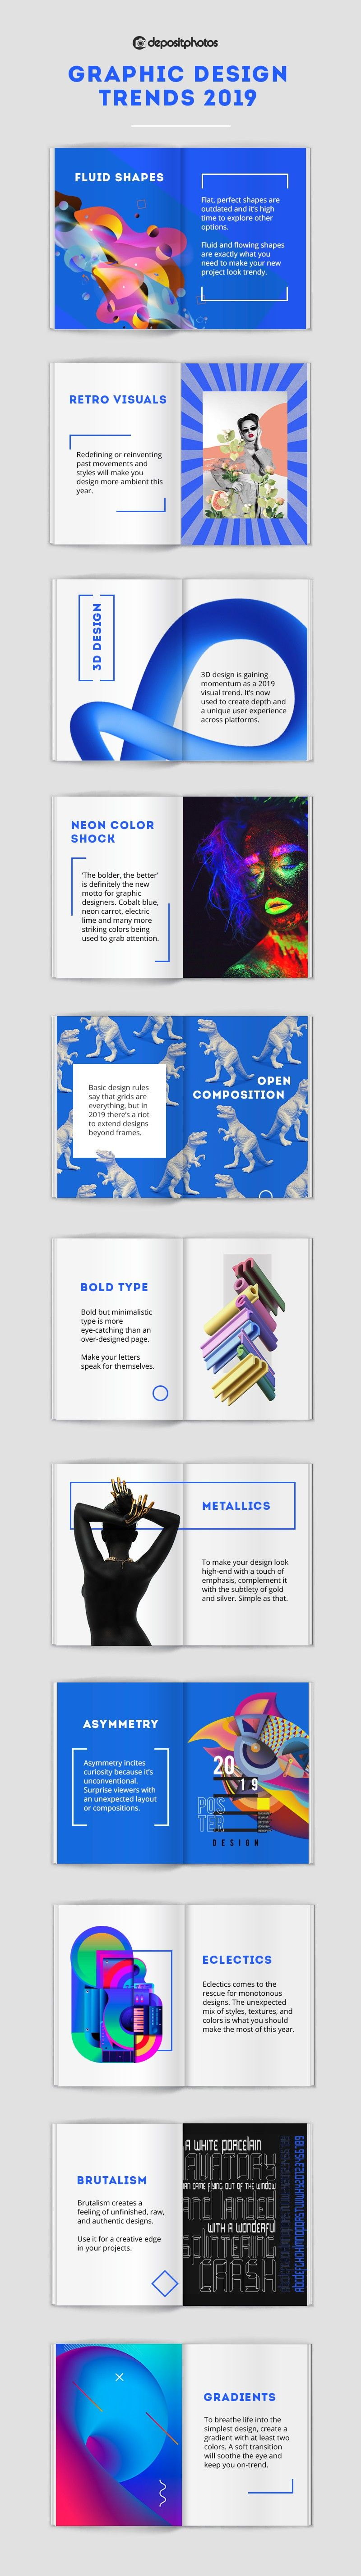 Infographic 11 Top Graphic Design Trends Open Look Business Solutions Inc